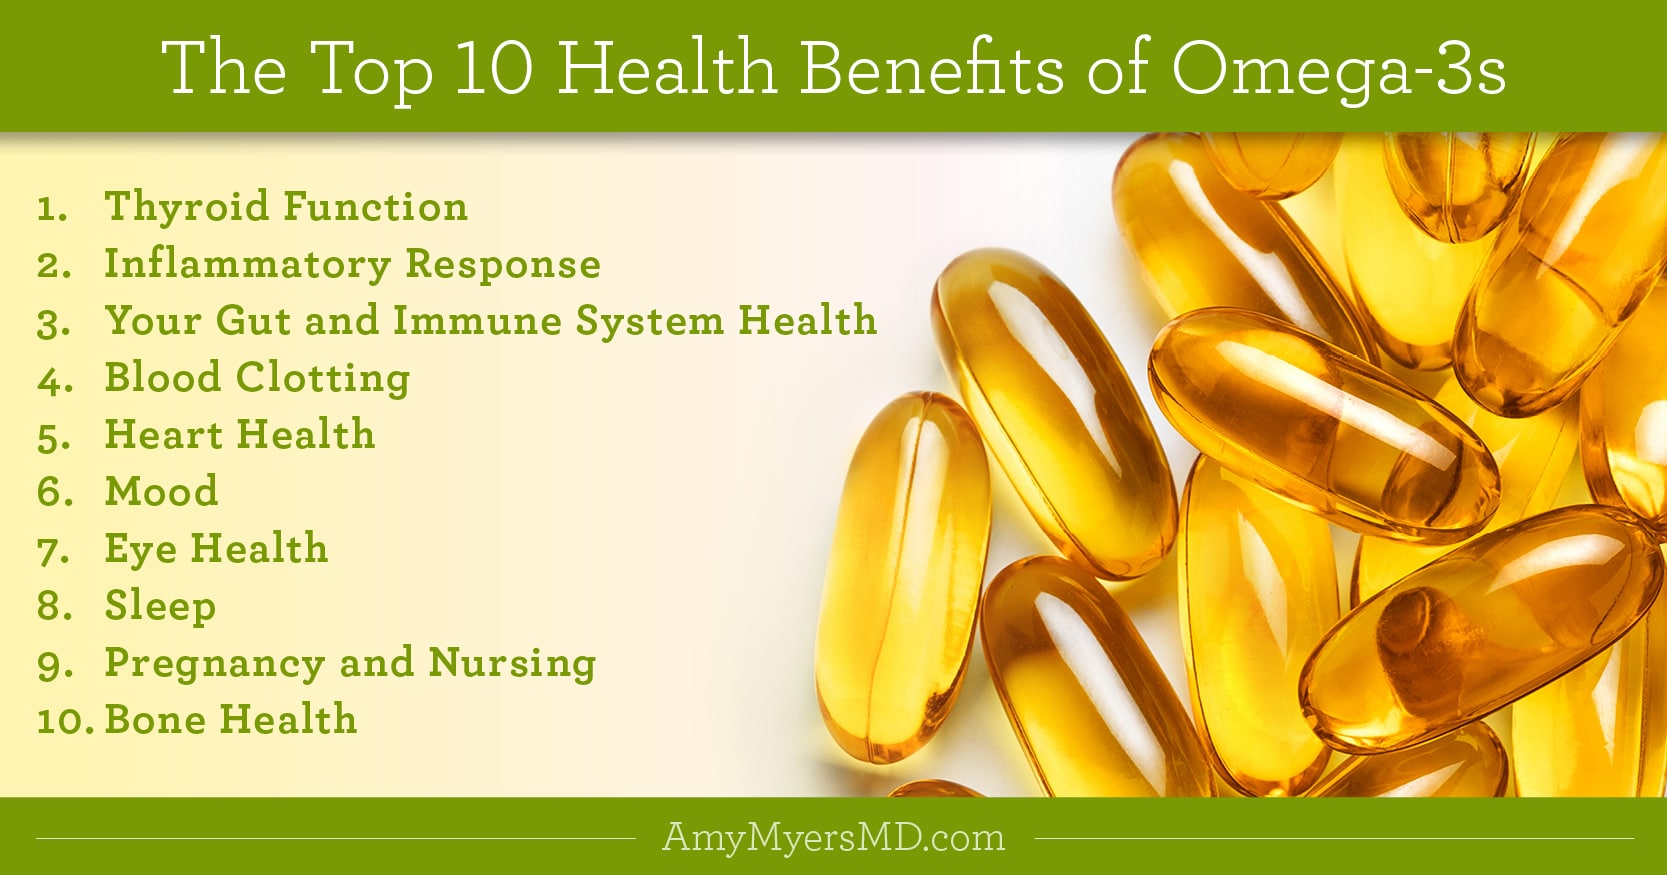 health benefits of omega-3s